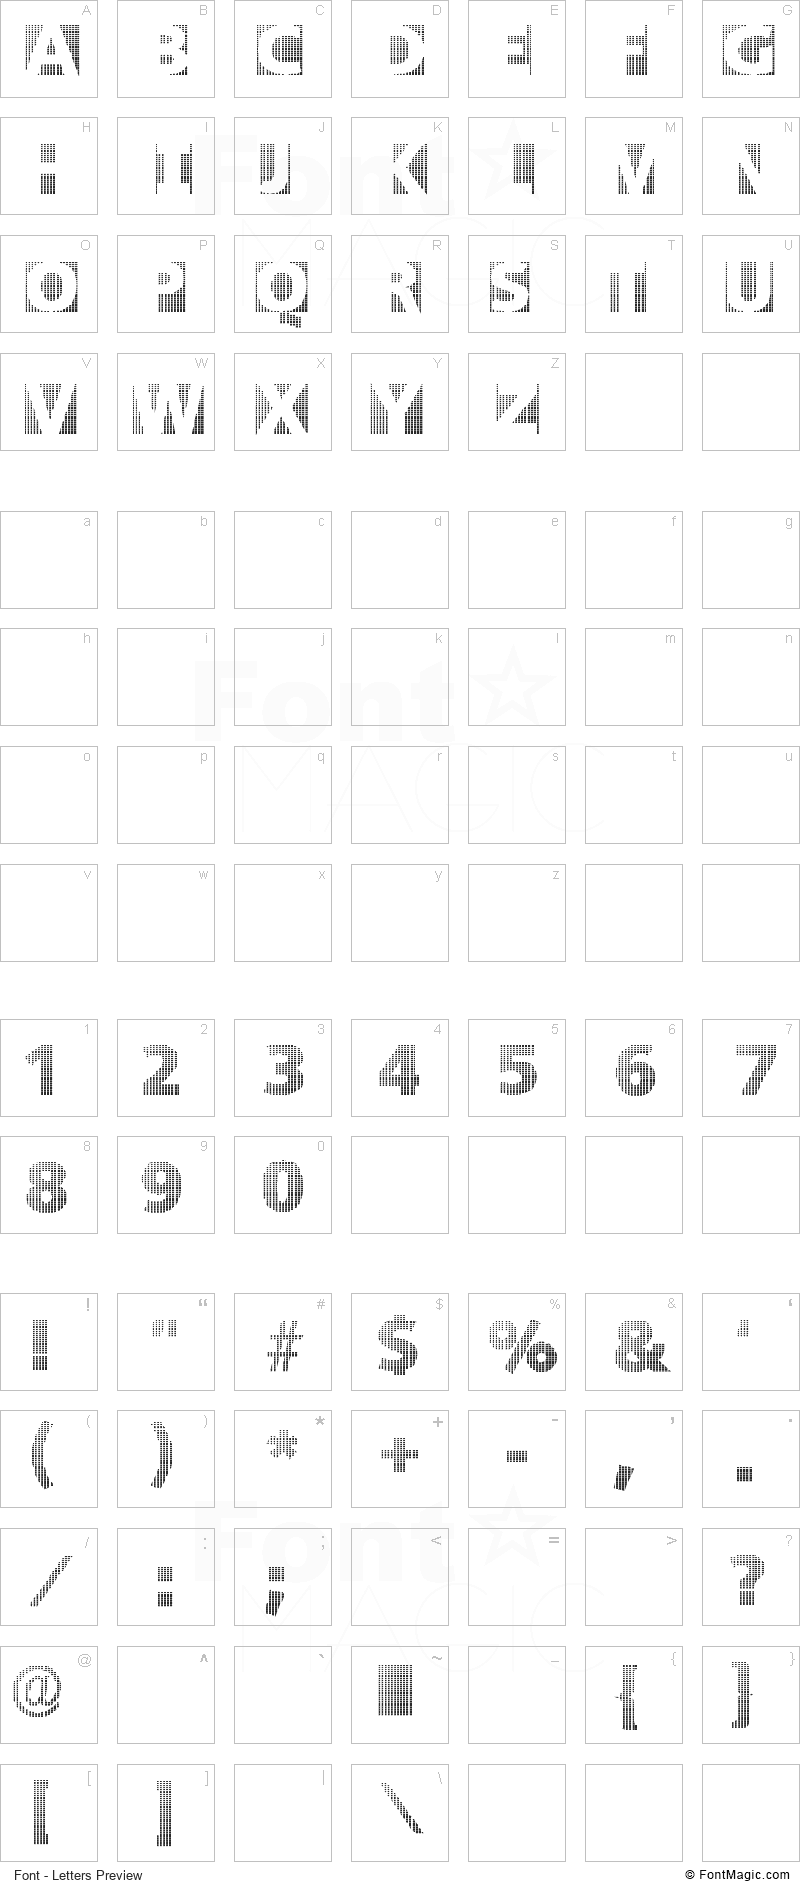 Black White Grids Font - All Latters Preview Chart